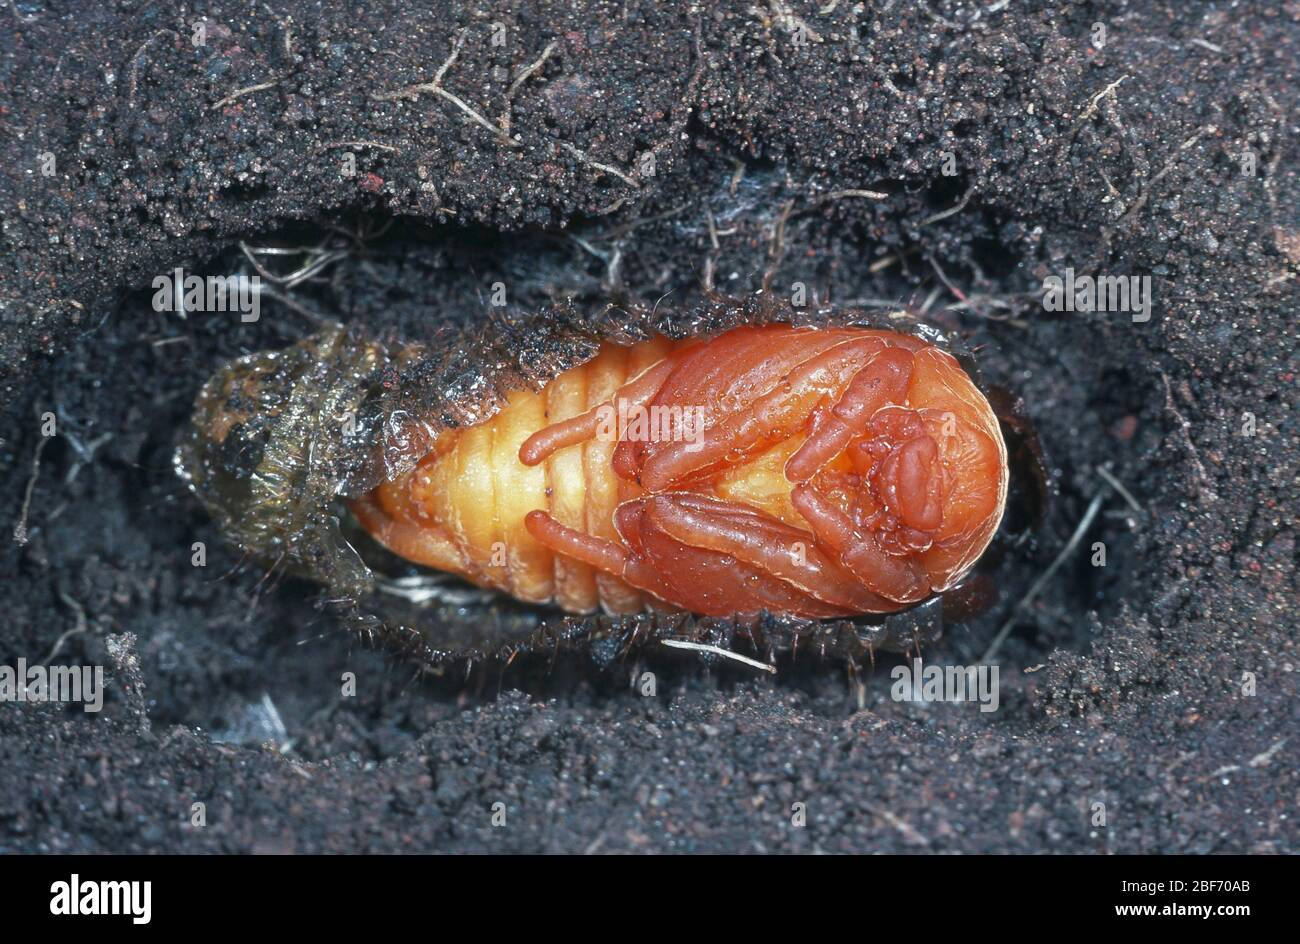 Common cockchafer, Maybug, Maybeetle (Melolontha melolontha), pupa digged in the ground Stock Photo